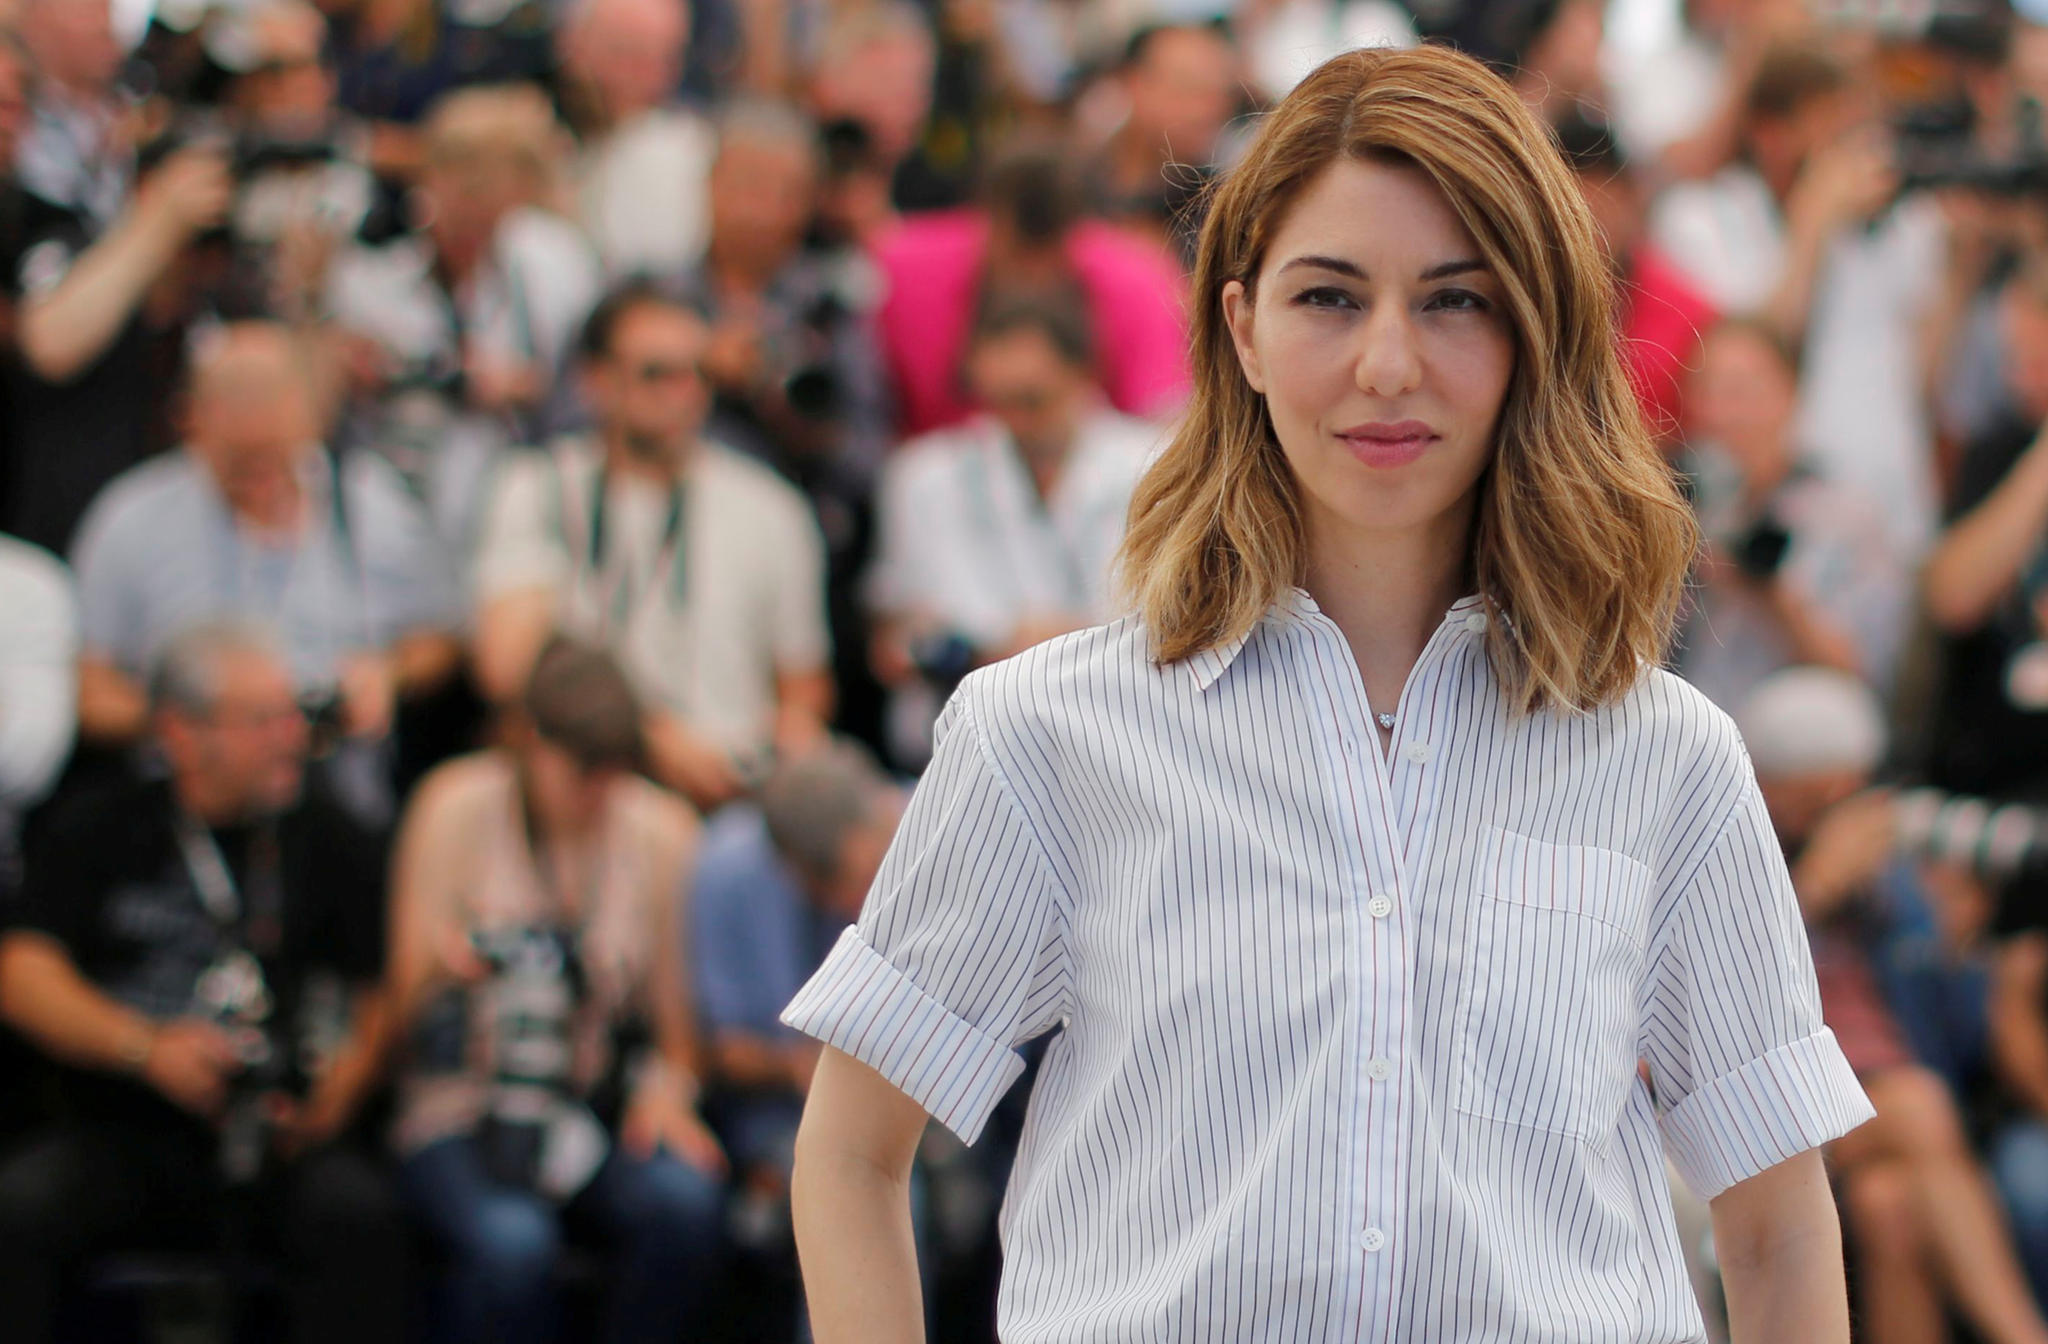 Sofia Coppola in Cannes (Mai 2017)